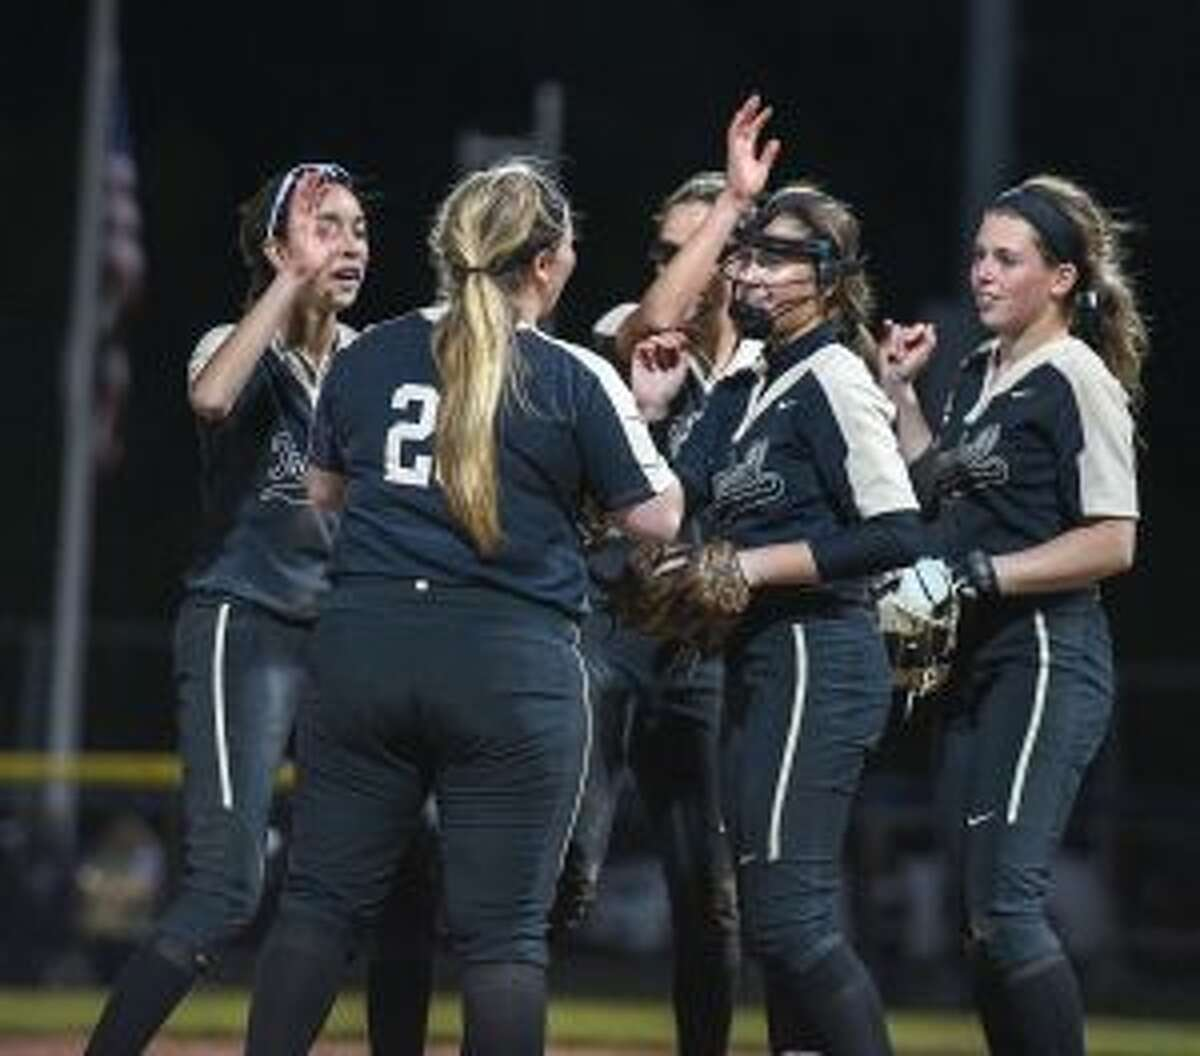 Trumbull's infield surrounds Emily Gell after her strikeout closed the door on Cheshire. - David G. Whitham photos